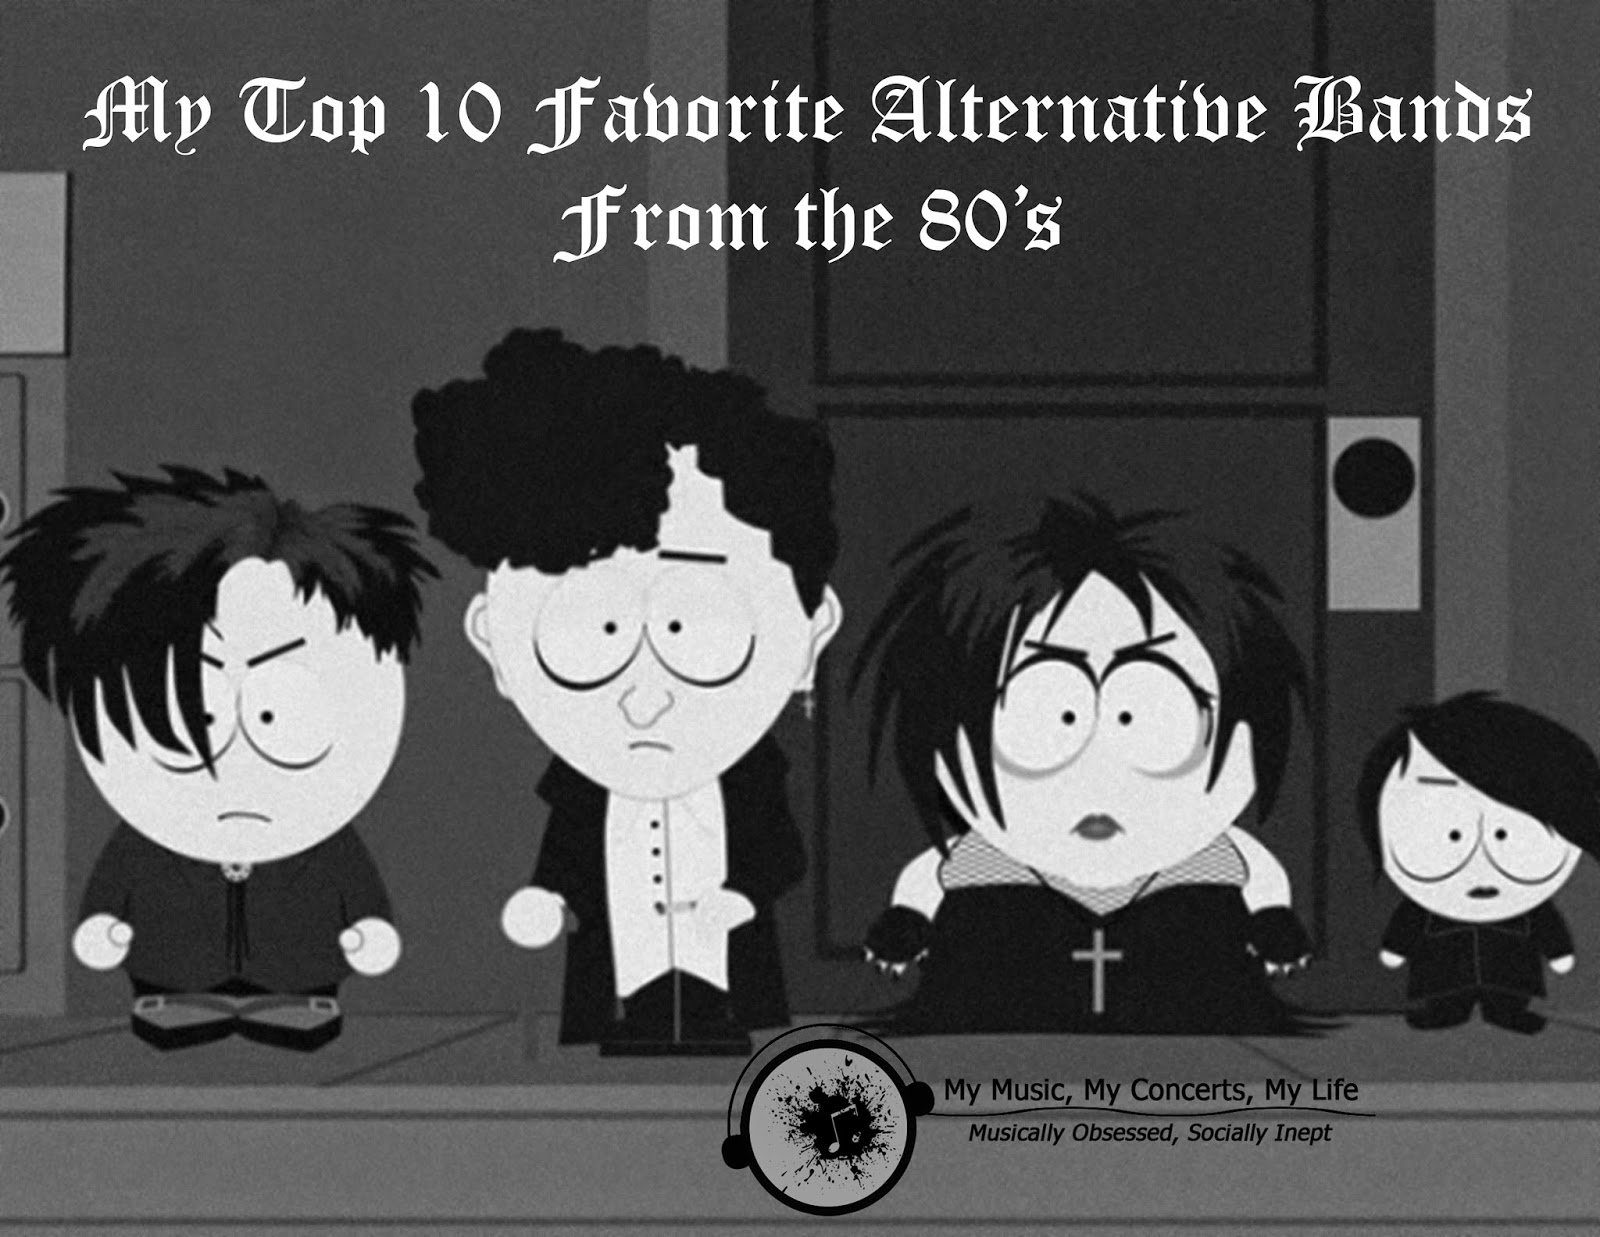 My Top 10 Favorite Alternative Bands From The 80s